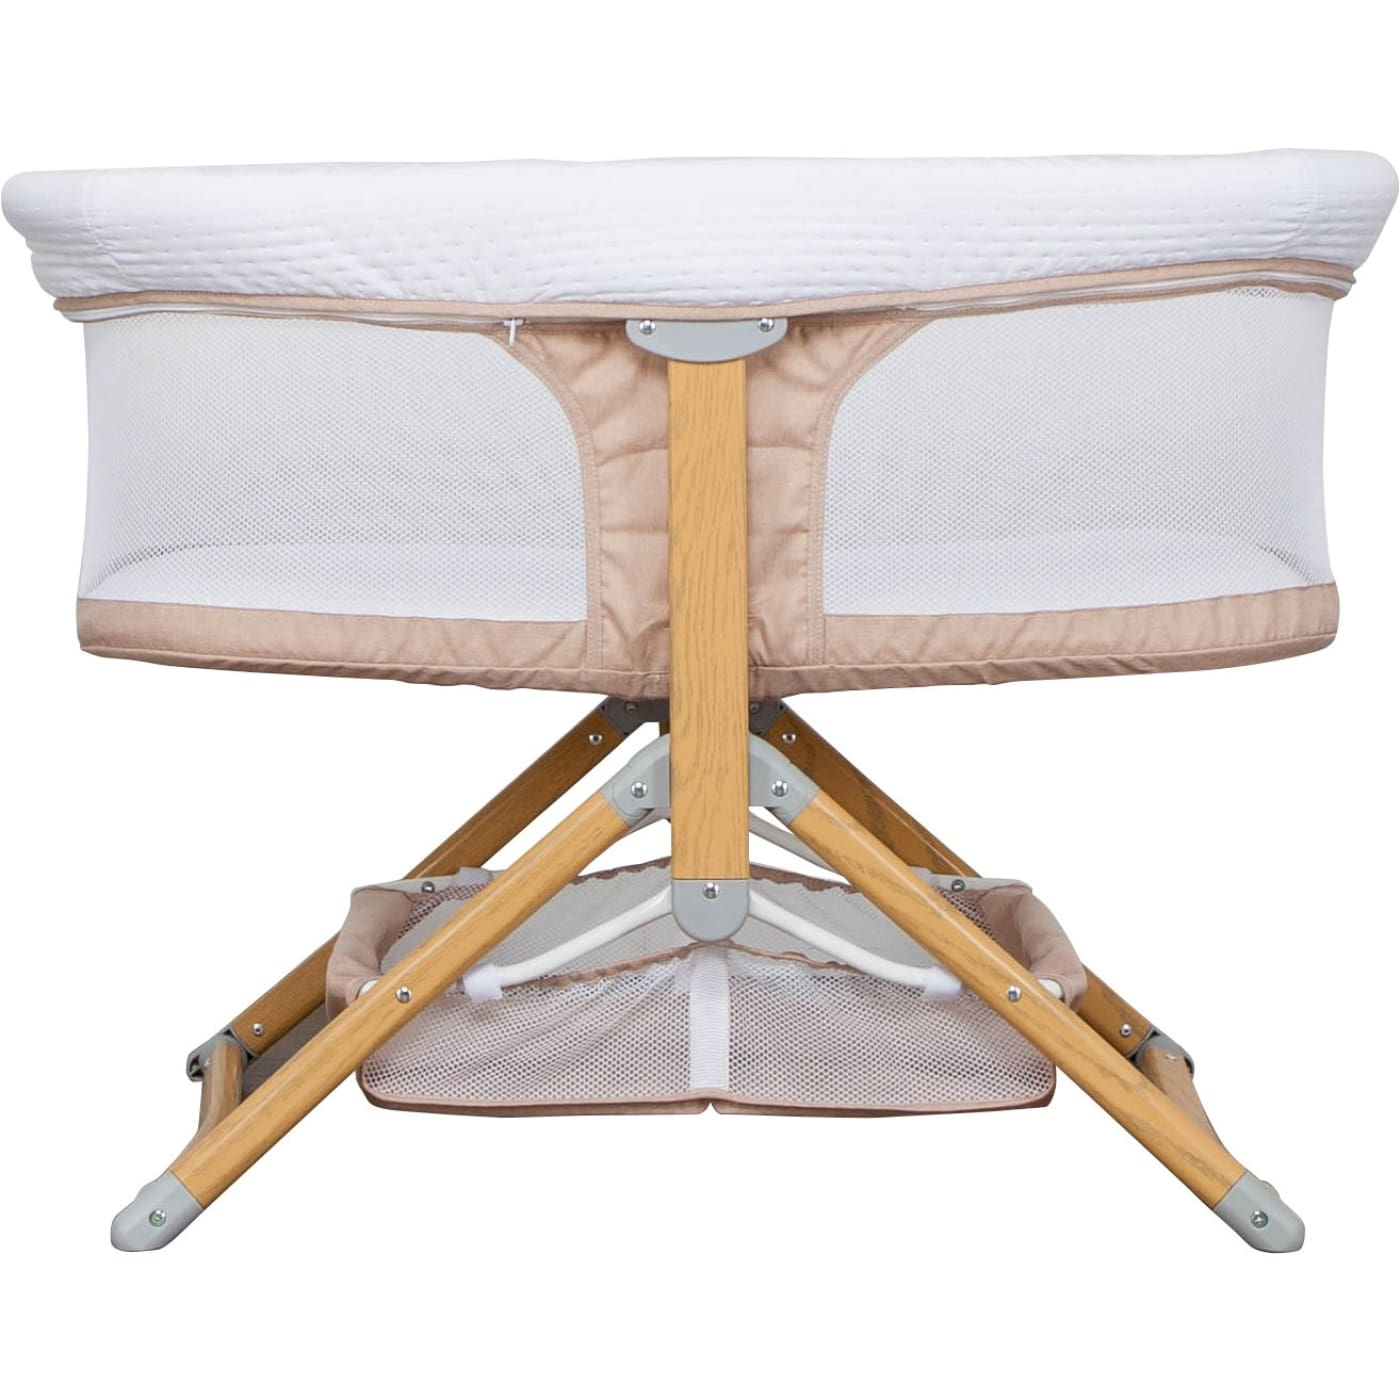 Grotime Luna Folding Bassinet - Beige - Beige - NURSERY & BEDTIME - BASSINETS/CRADLES/CO-SLEEPERS